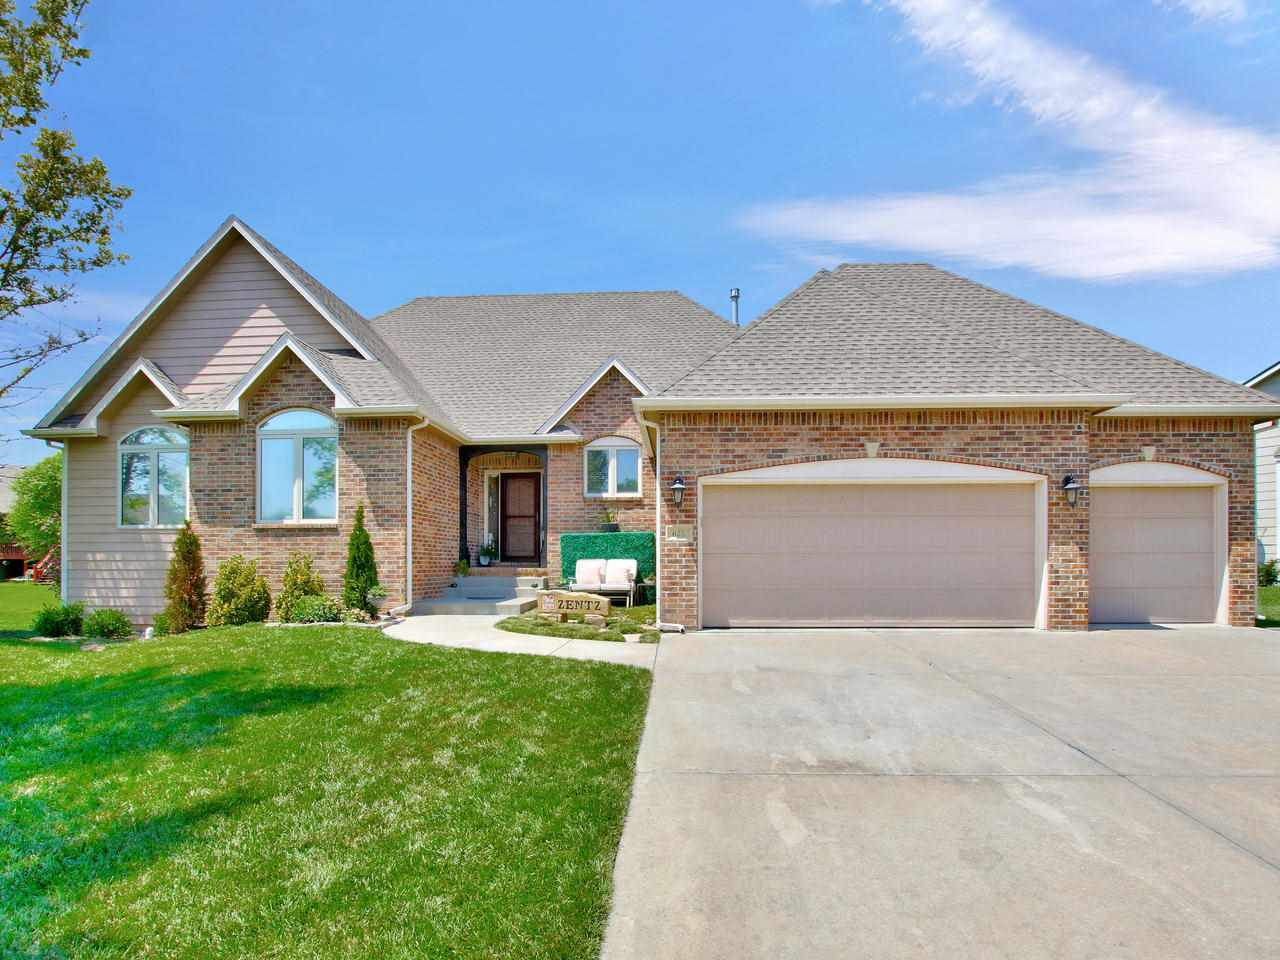 Enjoy access to all that Andover has to offer with an immaculately updated 4 bedroom, 3 bathroom hom